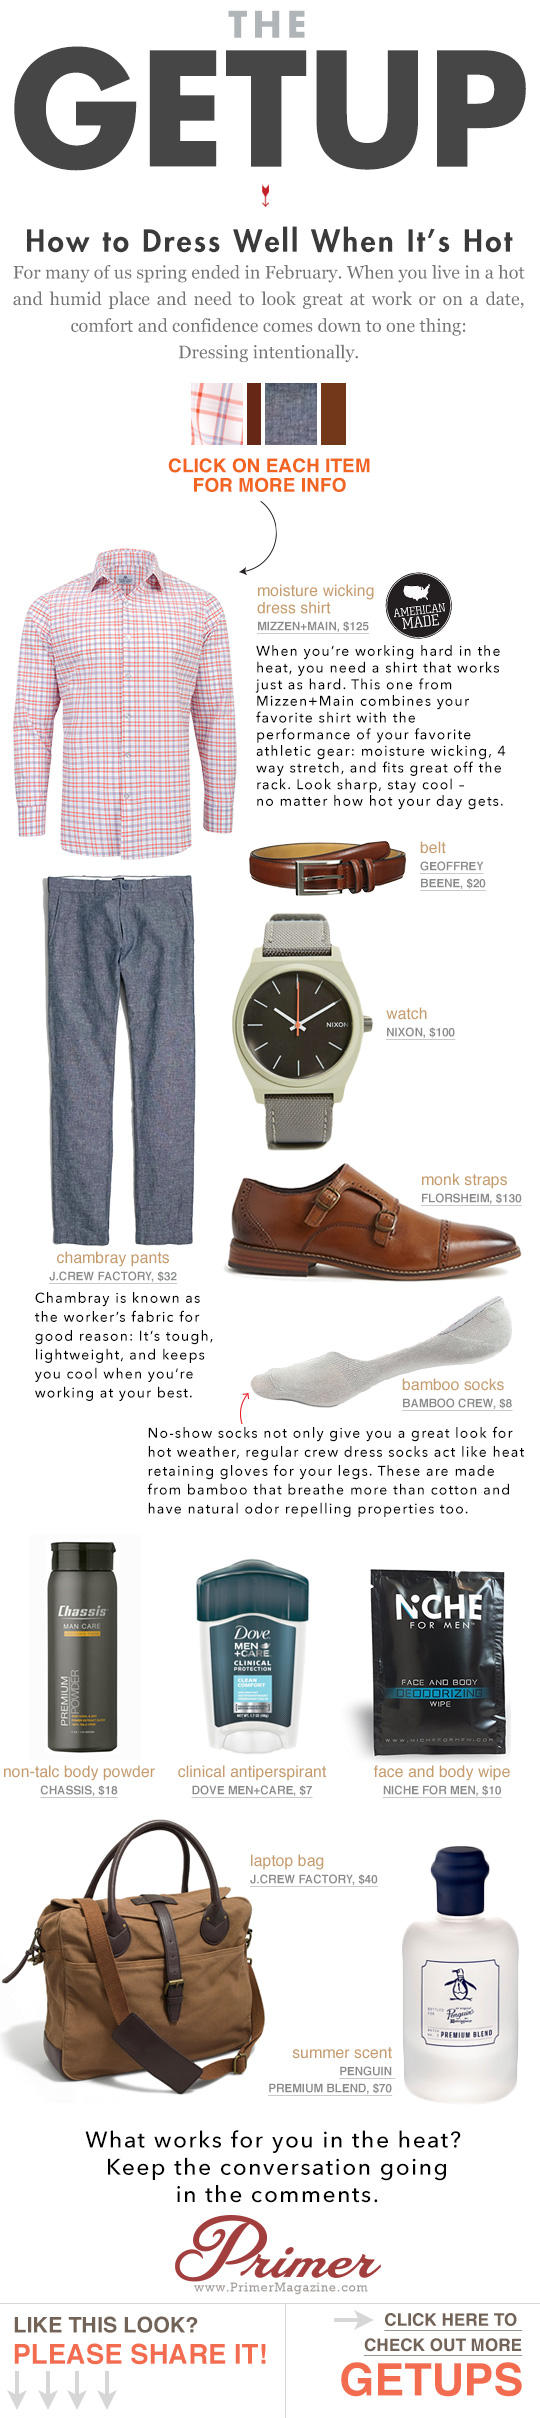 The Getup How to Dress Well When It\'s hot - outfit inspiration featuring tech fabrics and brown shoes